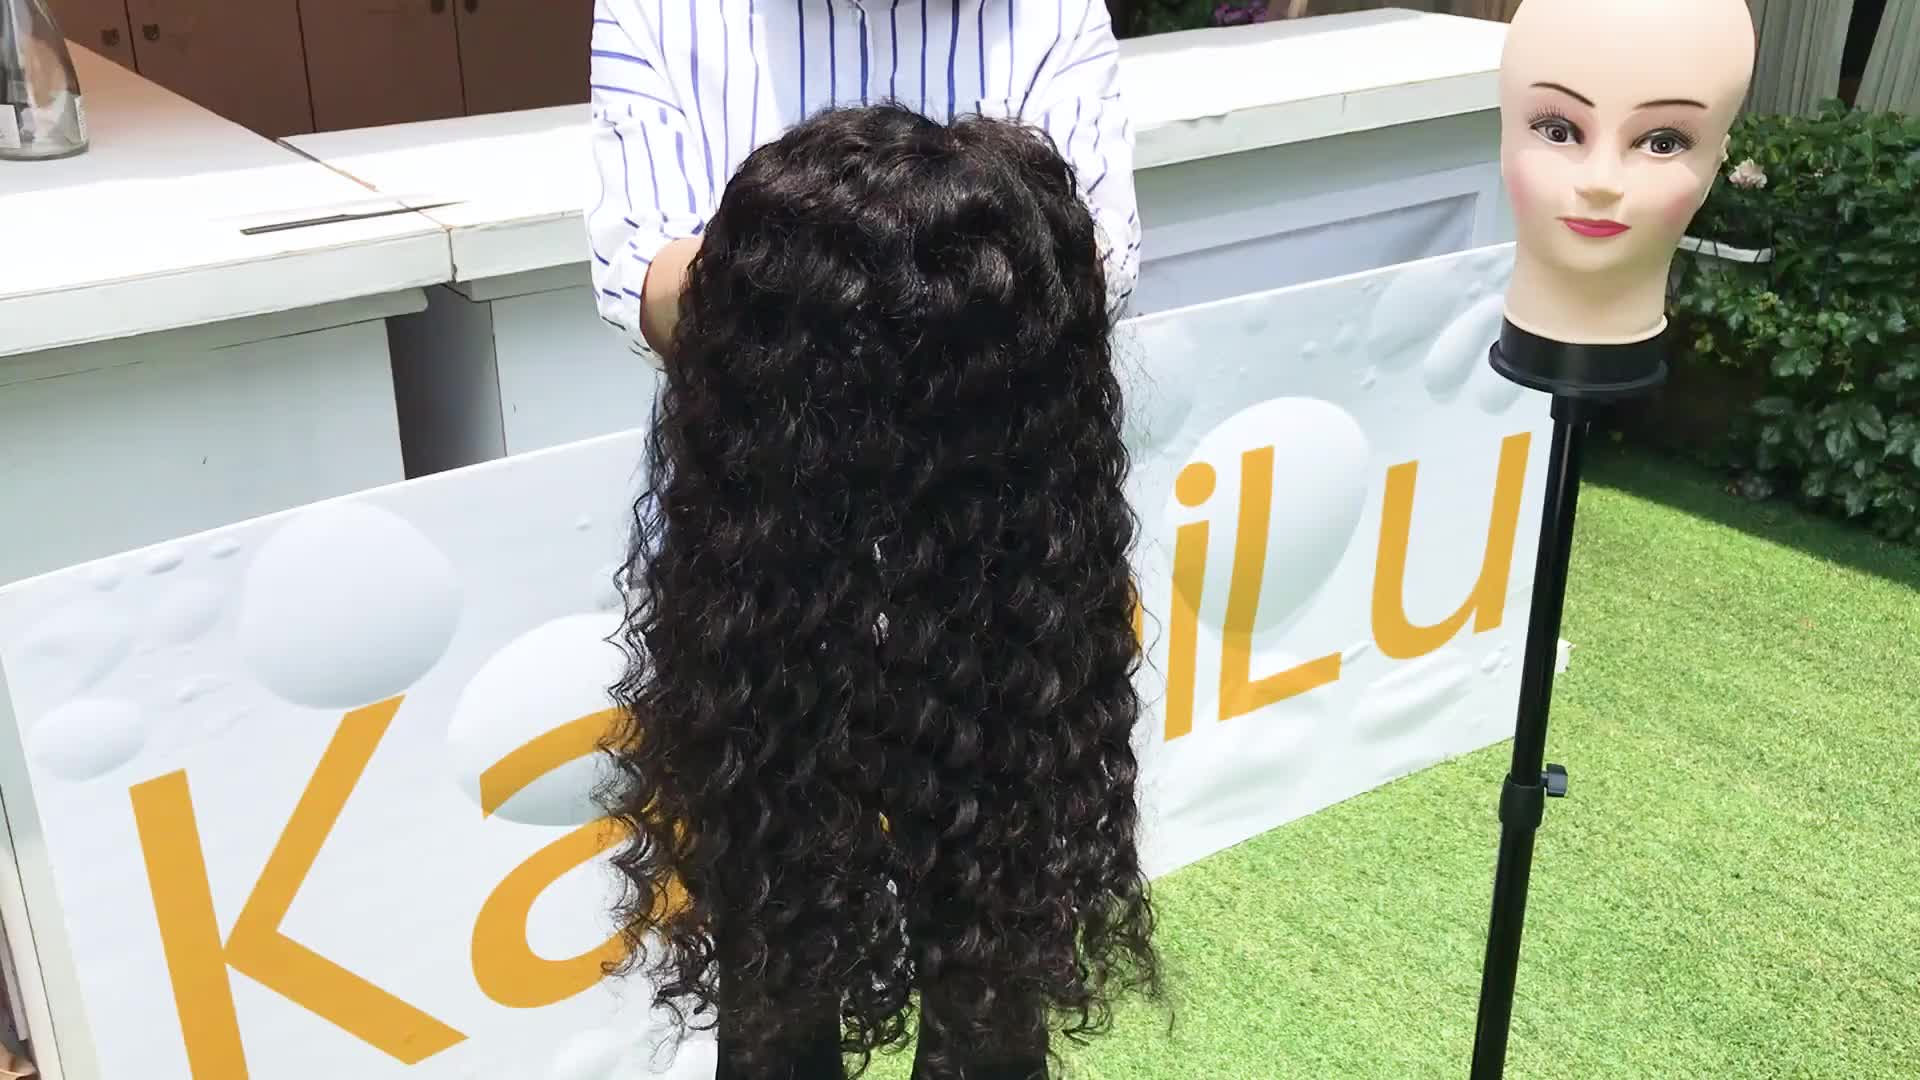 Wholesale full lace human hair wig 24 inches,cheap brazilian short loose curly afro kinky braided human hair wig for black women